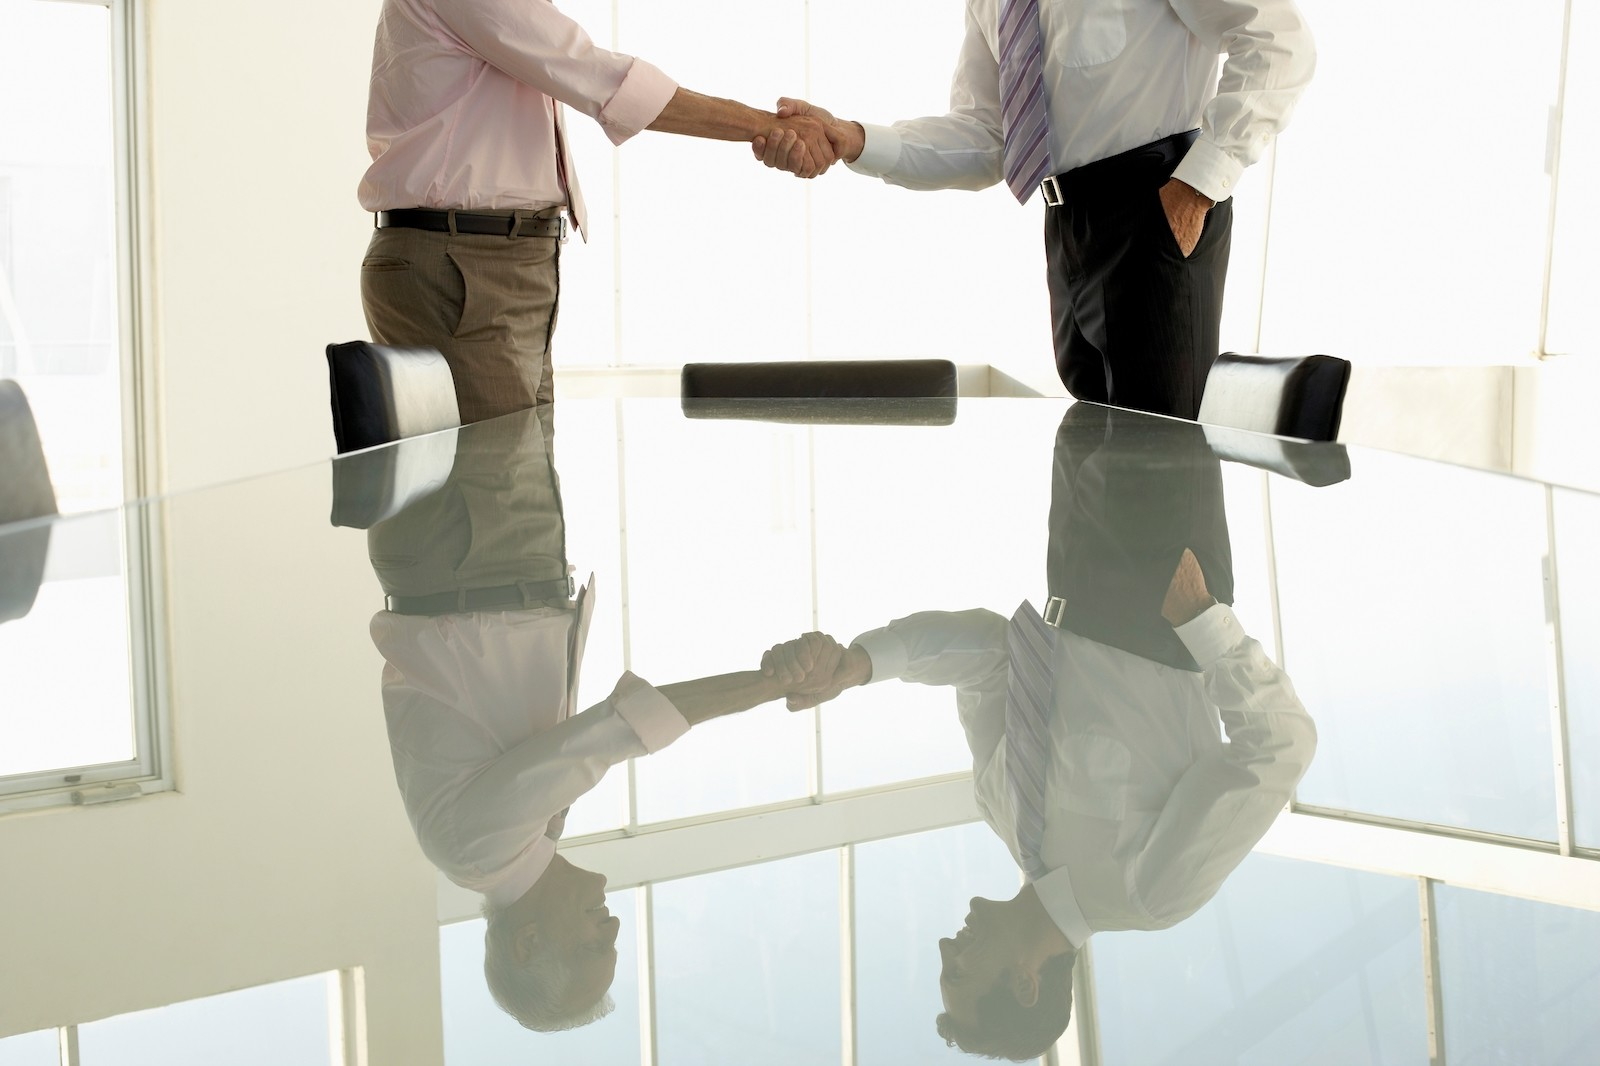 Businessmen shaking hands over a contract deal in a boardroom